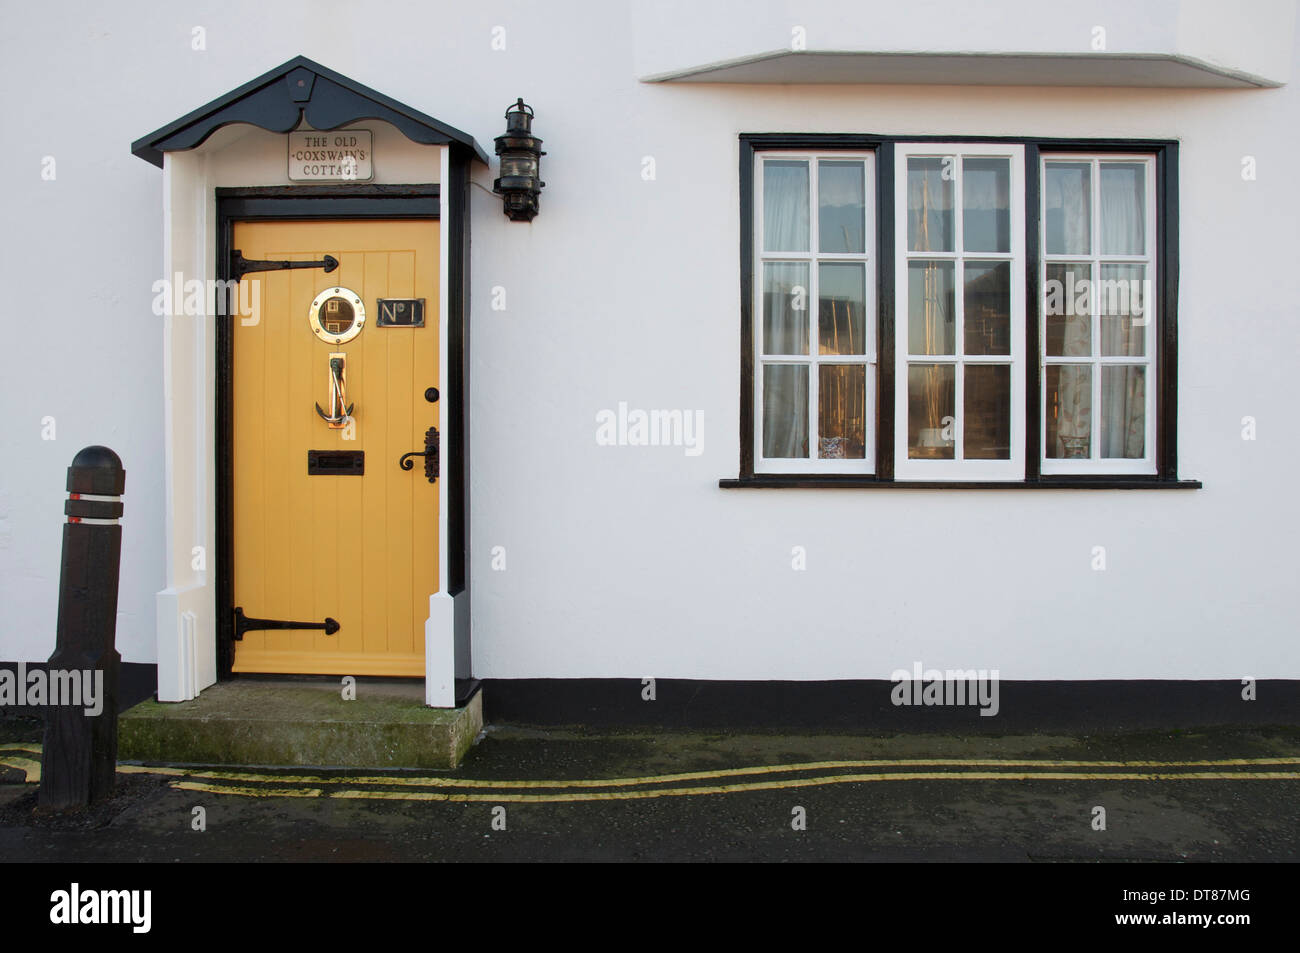 Front door of an old english cottage - Stock Photo The Polished Window And Glossy Yellow Front Door Of The Old Coxswain S Cottage On The Quayside Of Weymouth Harbour In Dorset England